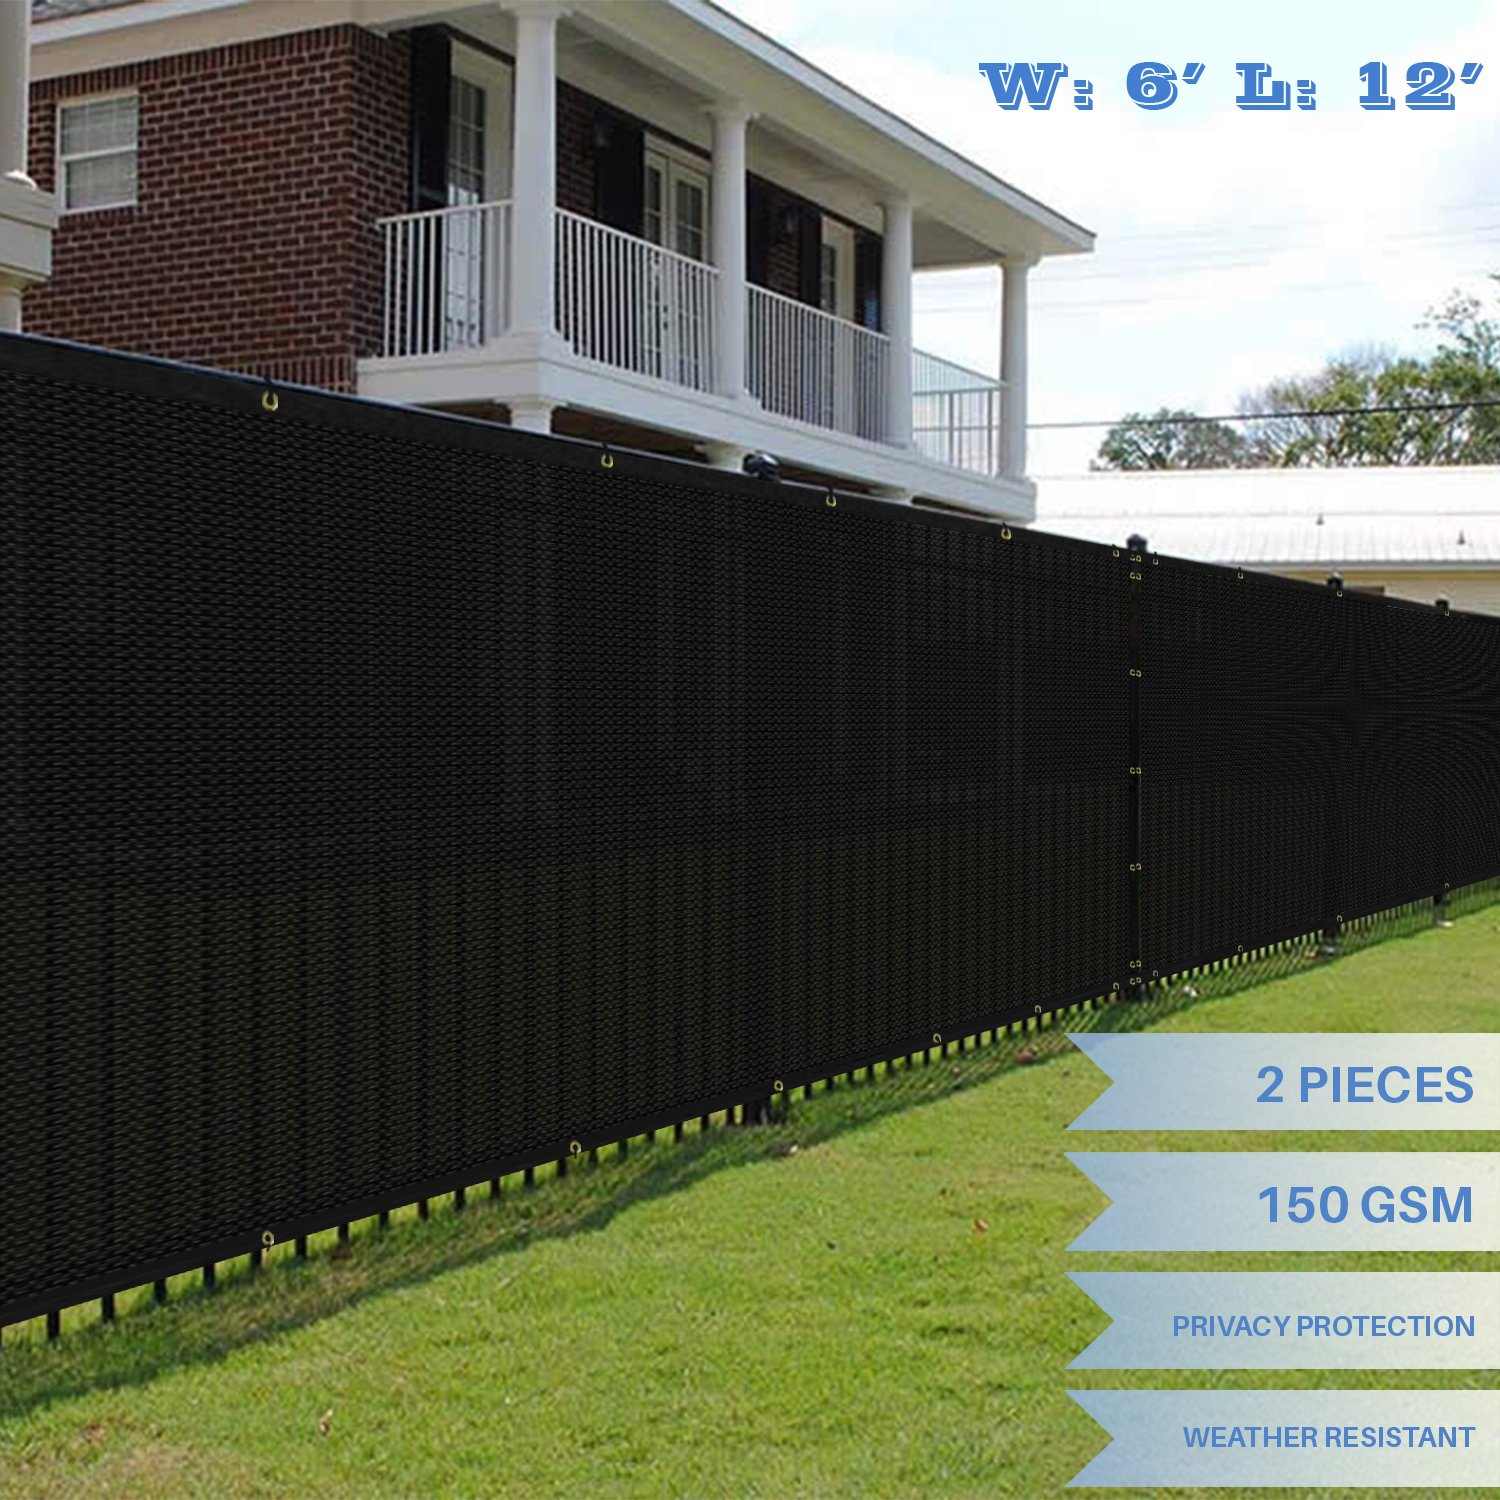 E&K Sunrise 6' x 12' Black Fence Privacy Screen, Commercial Outdoor Backyard Shade Windscreen Mesh Fabric 3 Years Warranty (Customized Set of 2